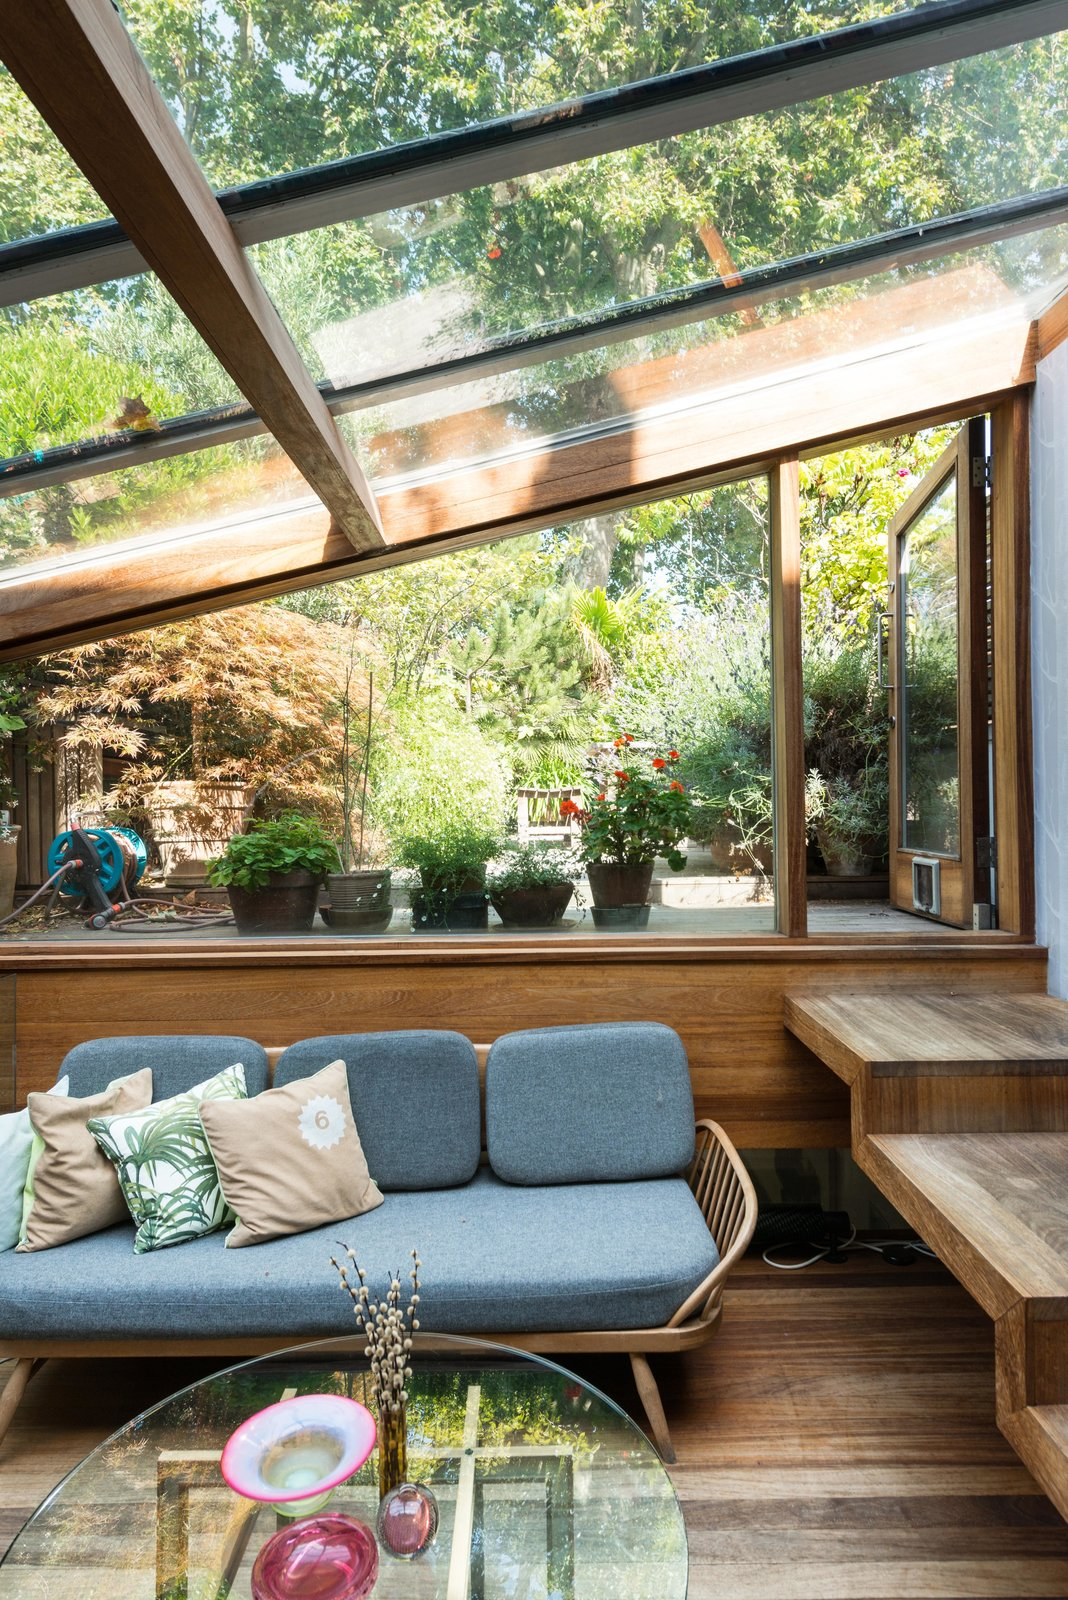 One of the additions that took place during Brinkworth's second phase of extensions, is the glazed garden room, which sits half a level below the first floor. Handcrafted wooden steps lead you to a terraced garden.